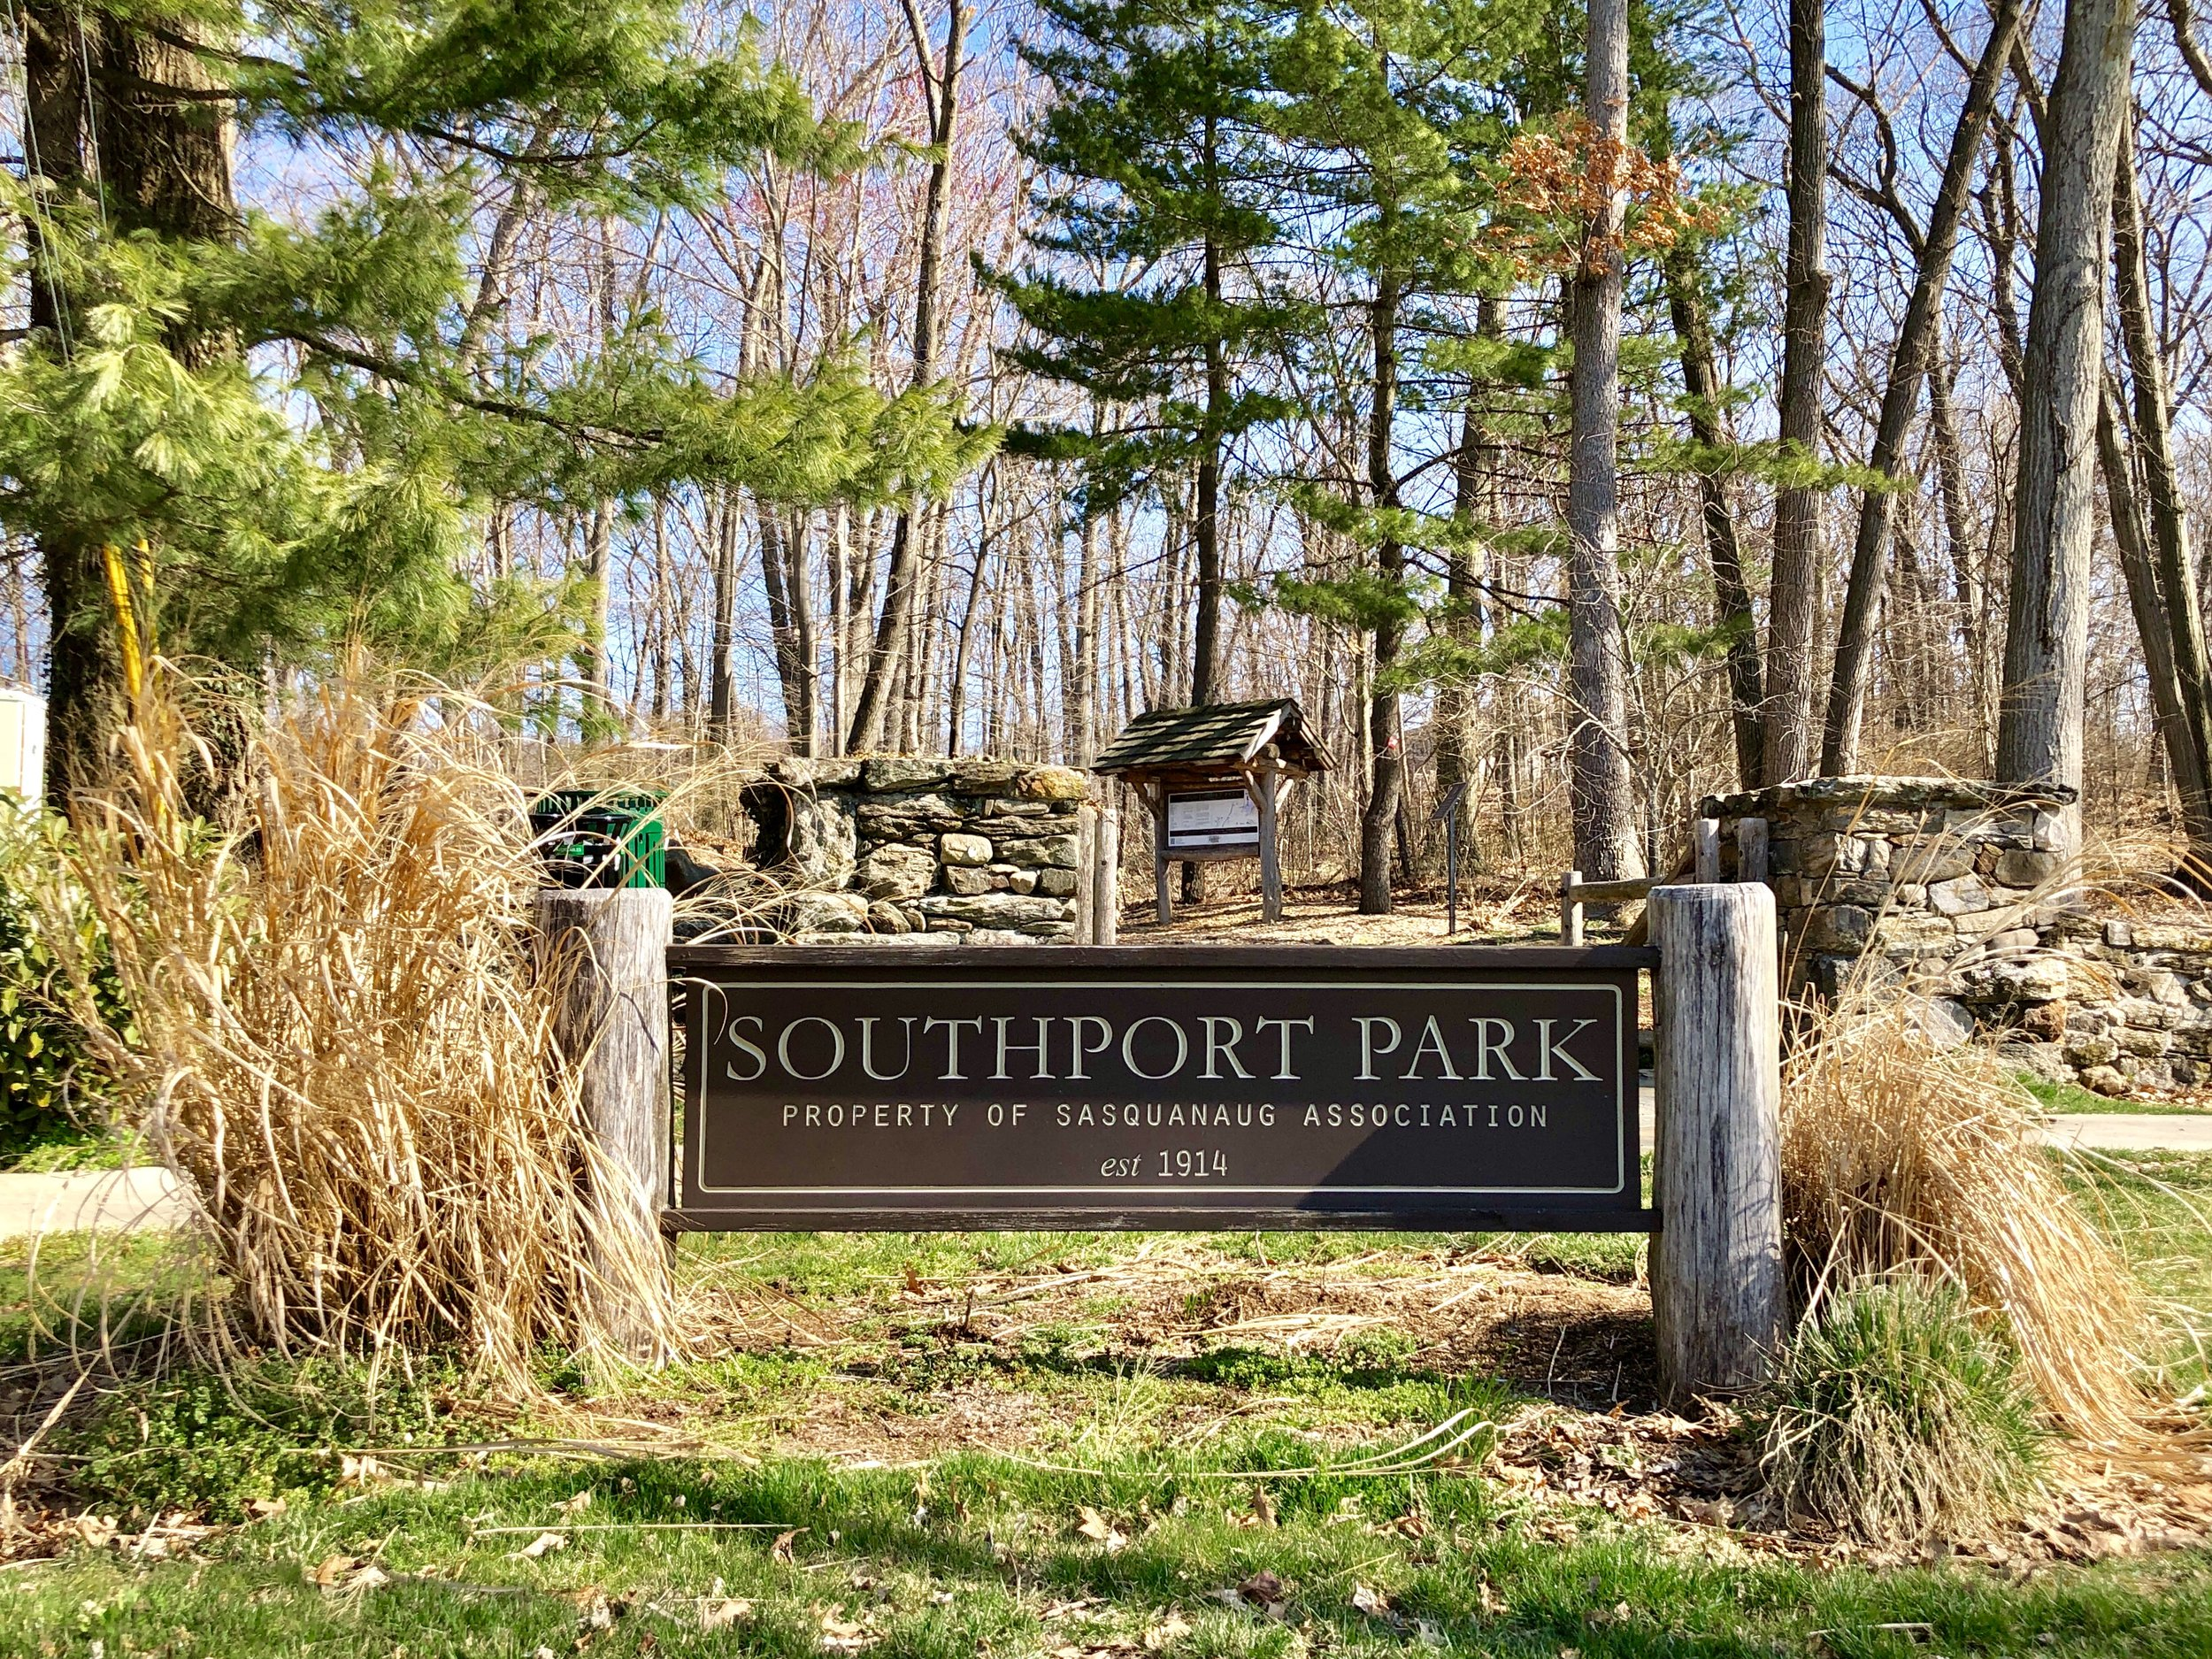 Southport Park - An urban oasis on the Old Post Road, the park's history begins with the railroad which owned the property in the 1890s and clear-cut it to use the wood to pay for an expansion project. The land was donated to Sasquanaug in 1954 with the condition that the property be maintained for public use and protection of plants and wildlife. Today its half-mile of trails is a favorite destination for dog walkers, hikers, joggers, and families who enjoy the natural playscape.